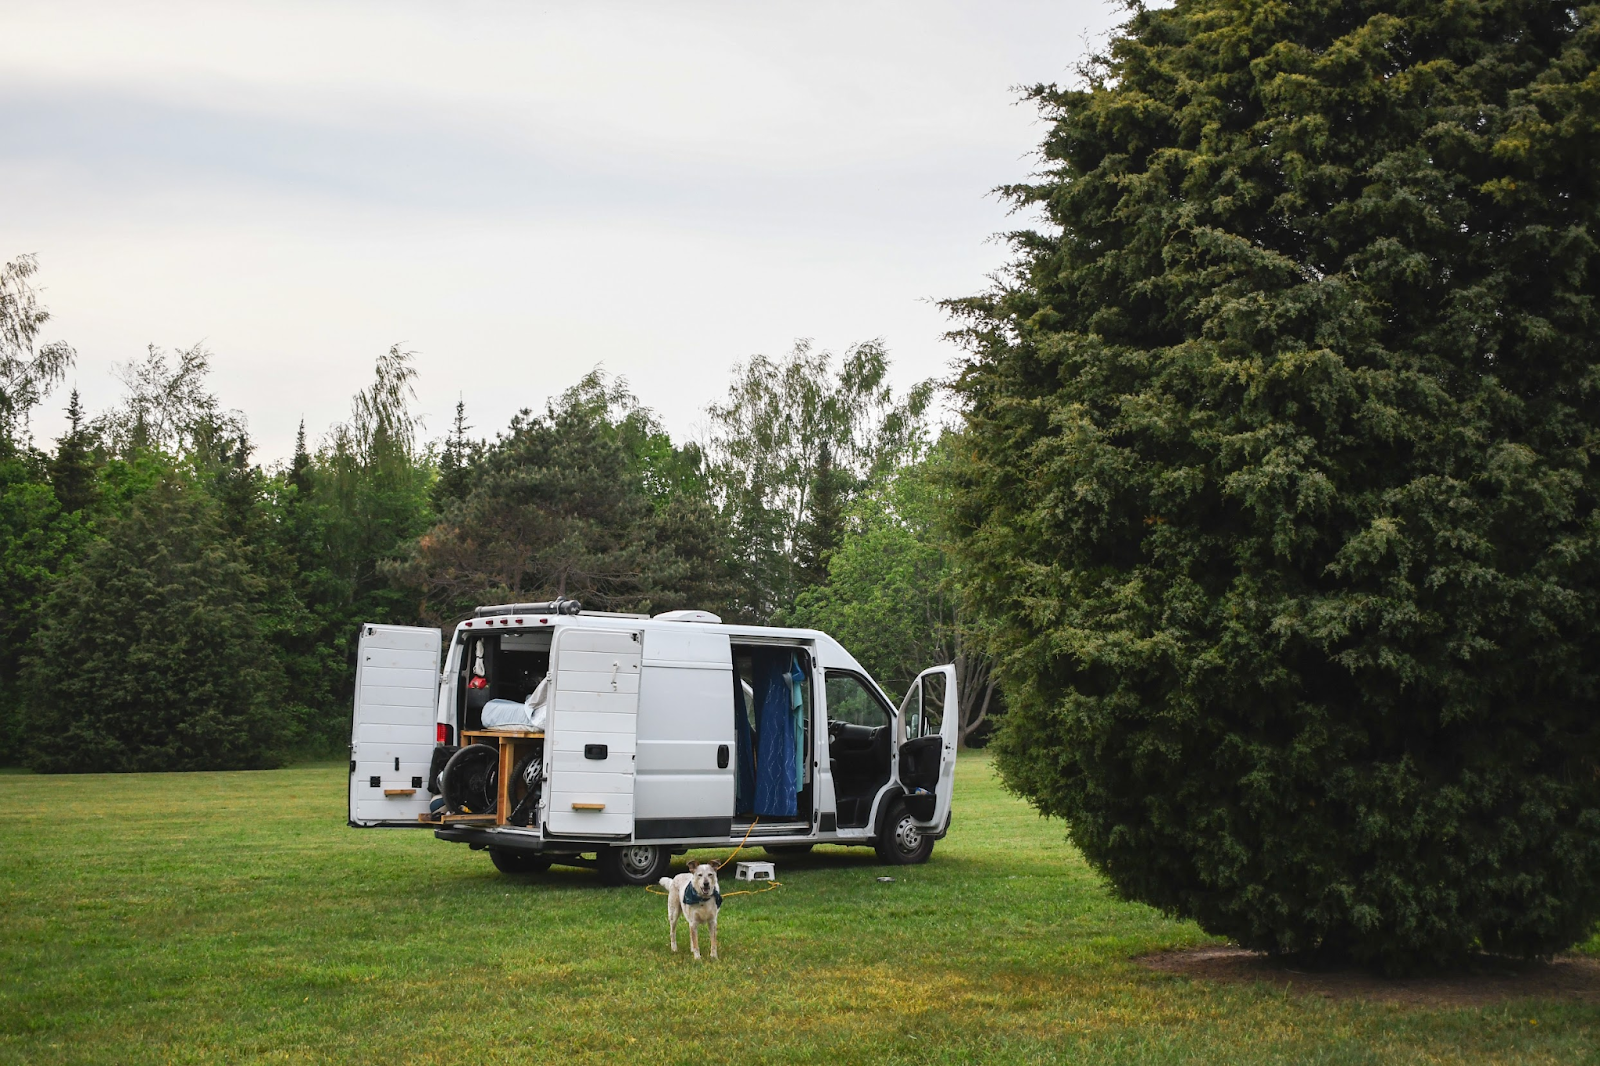 White van parked in green field with dog and tree in front.